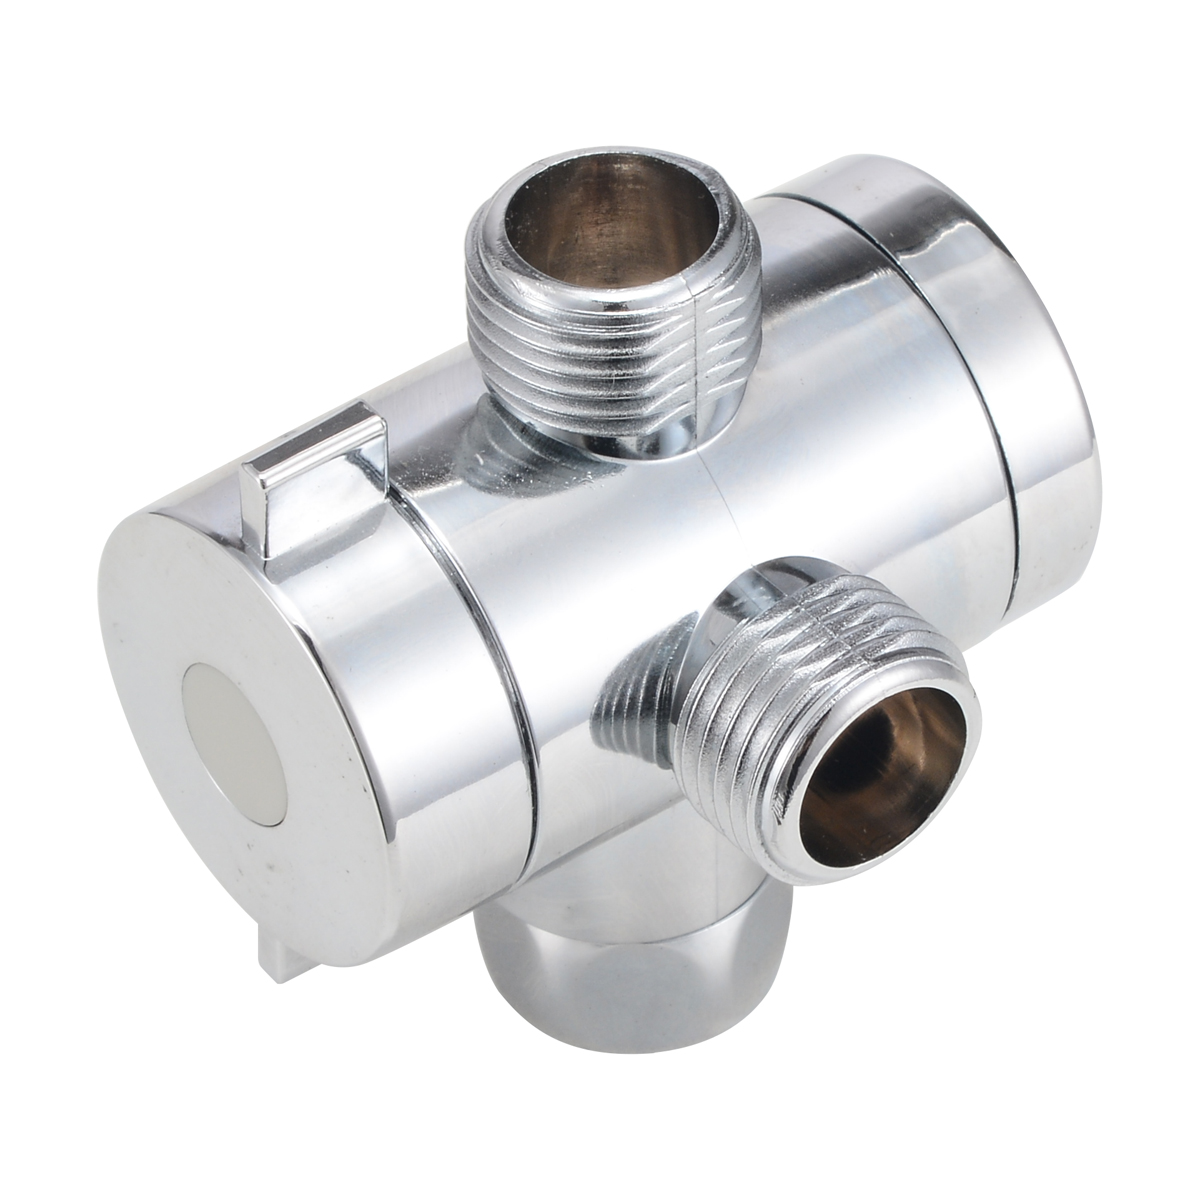 1/2 Inch Three Way T-adapter Diverter Valve Adjustable Shower Head Arm Mounted Diverter Valve For Bathroom Hardware Accessory